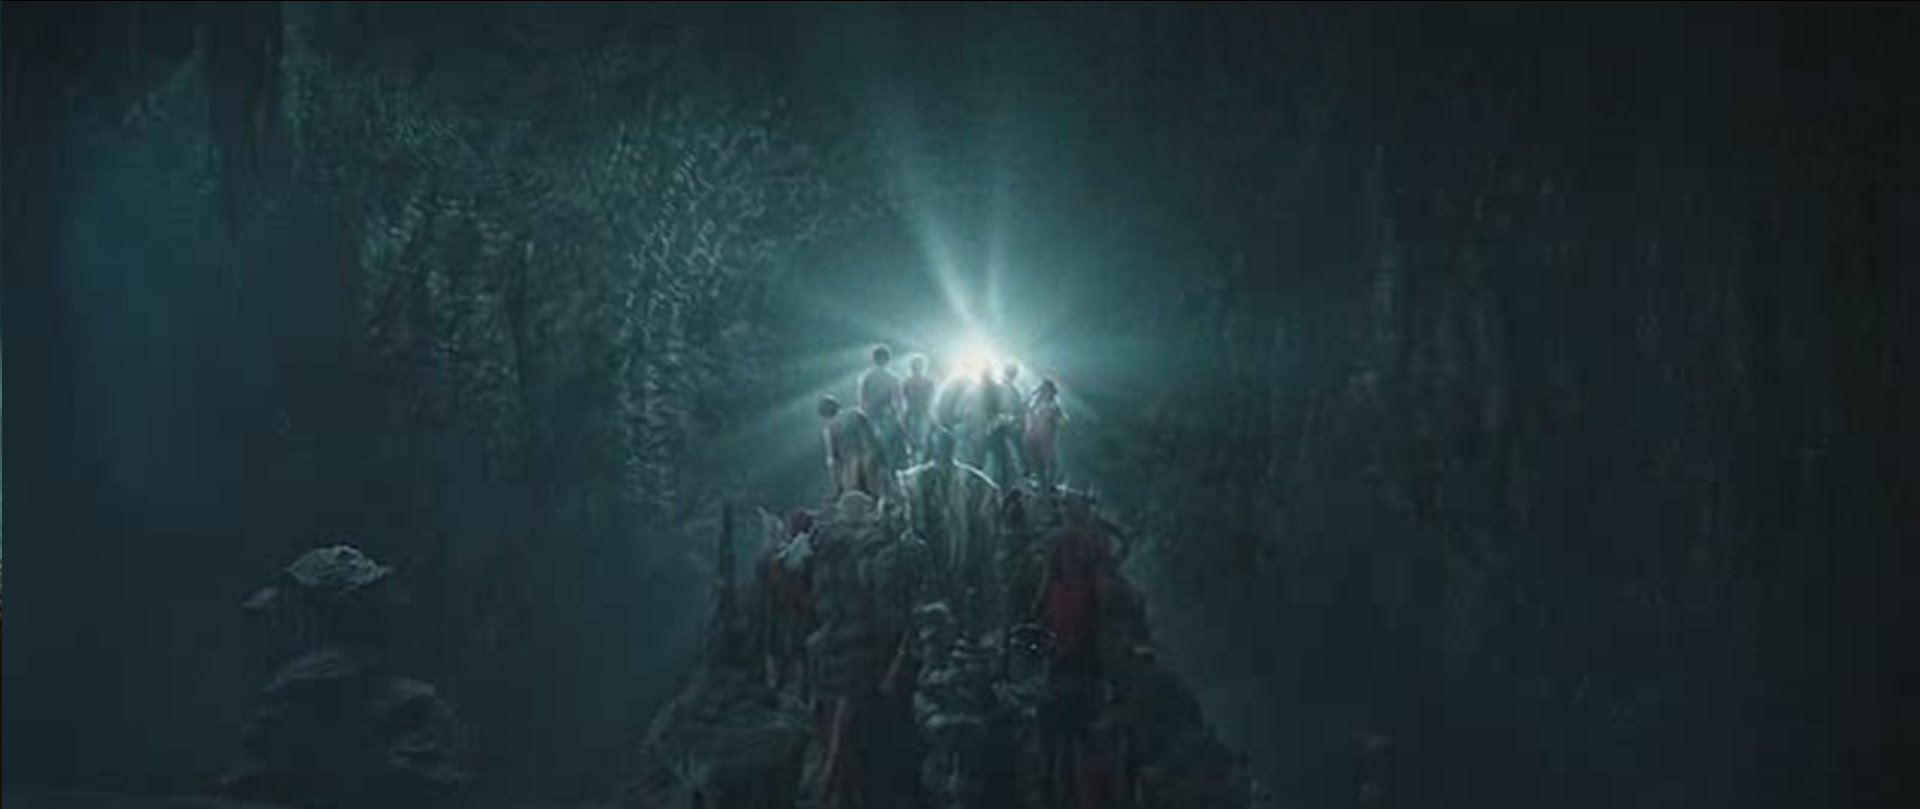 2015 Movie Pan is all About the Antichrist/Dajjal